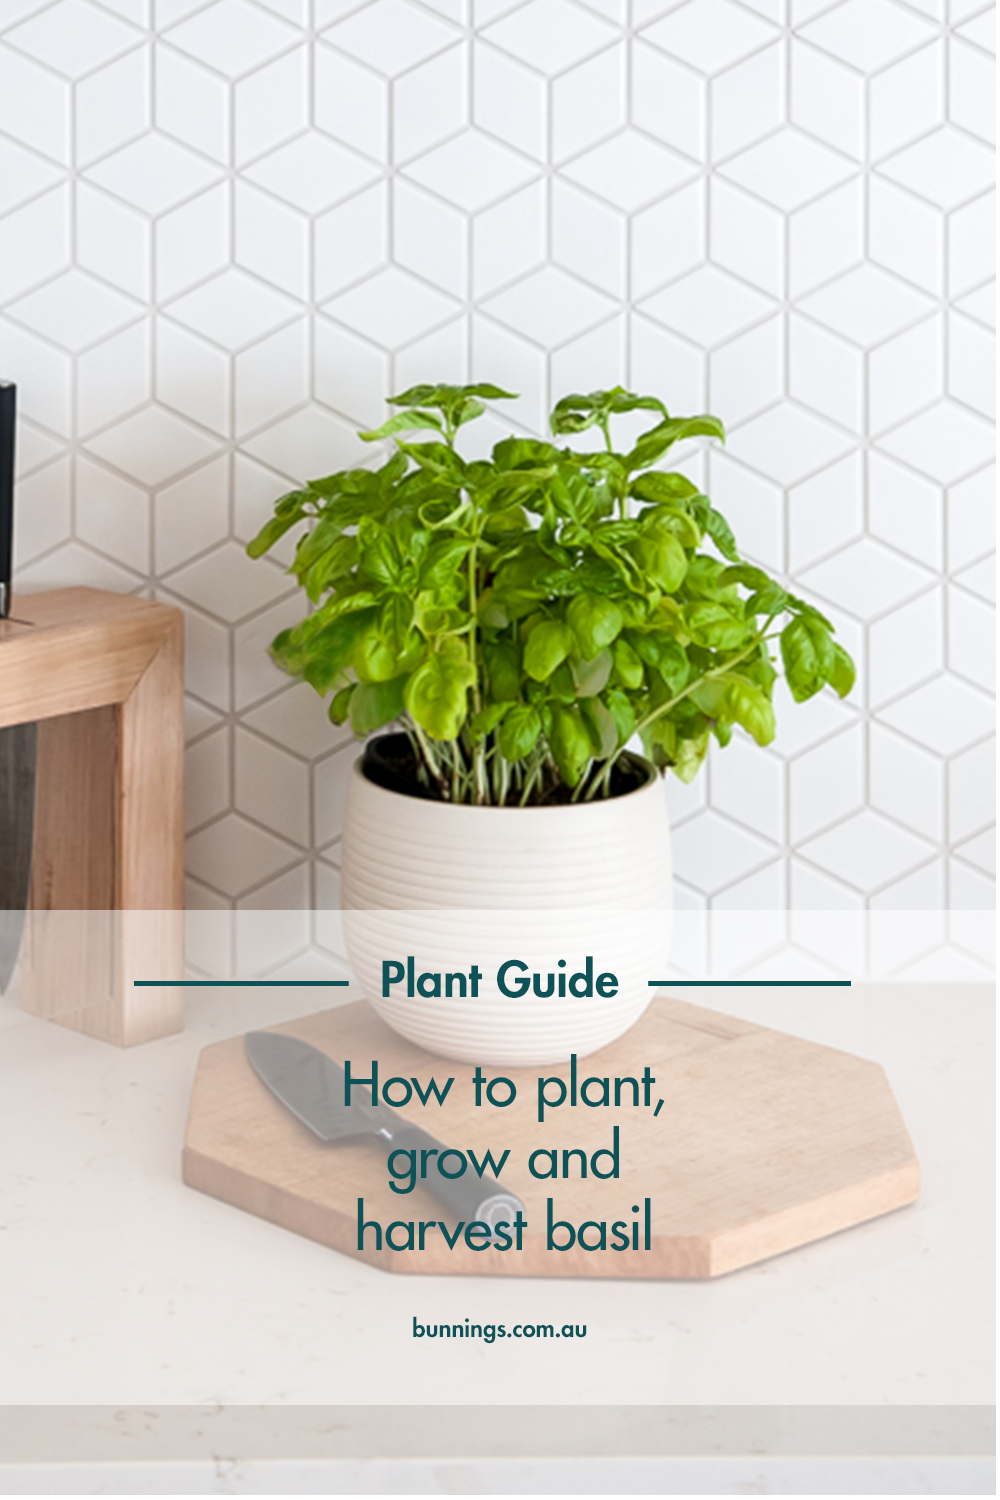 Ever thought about caring for your own basil plant? Well